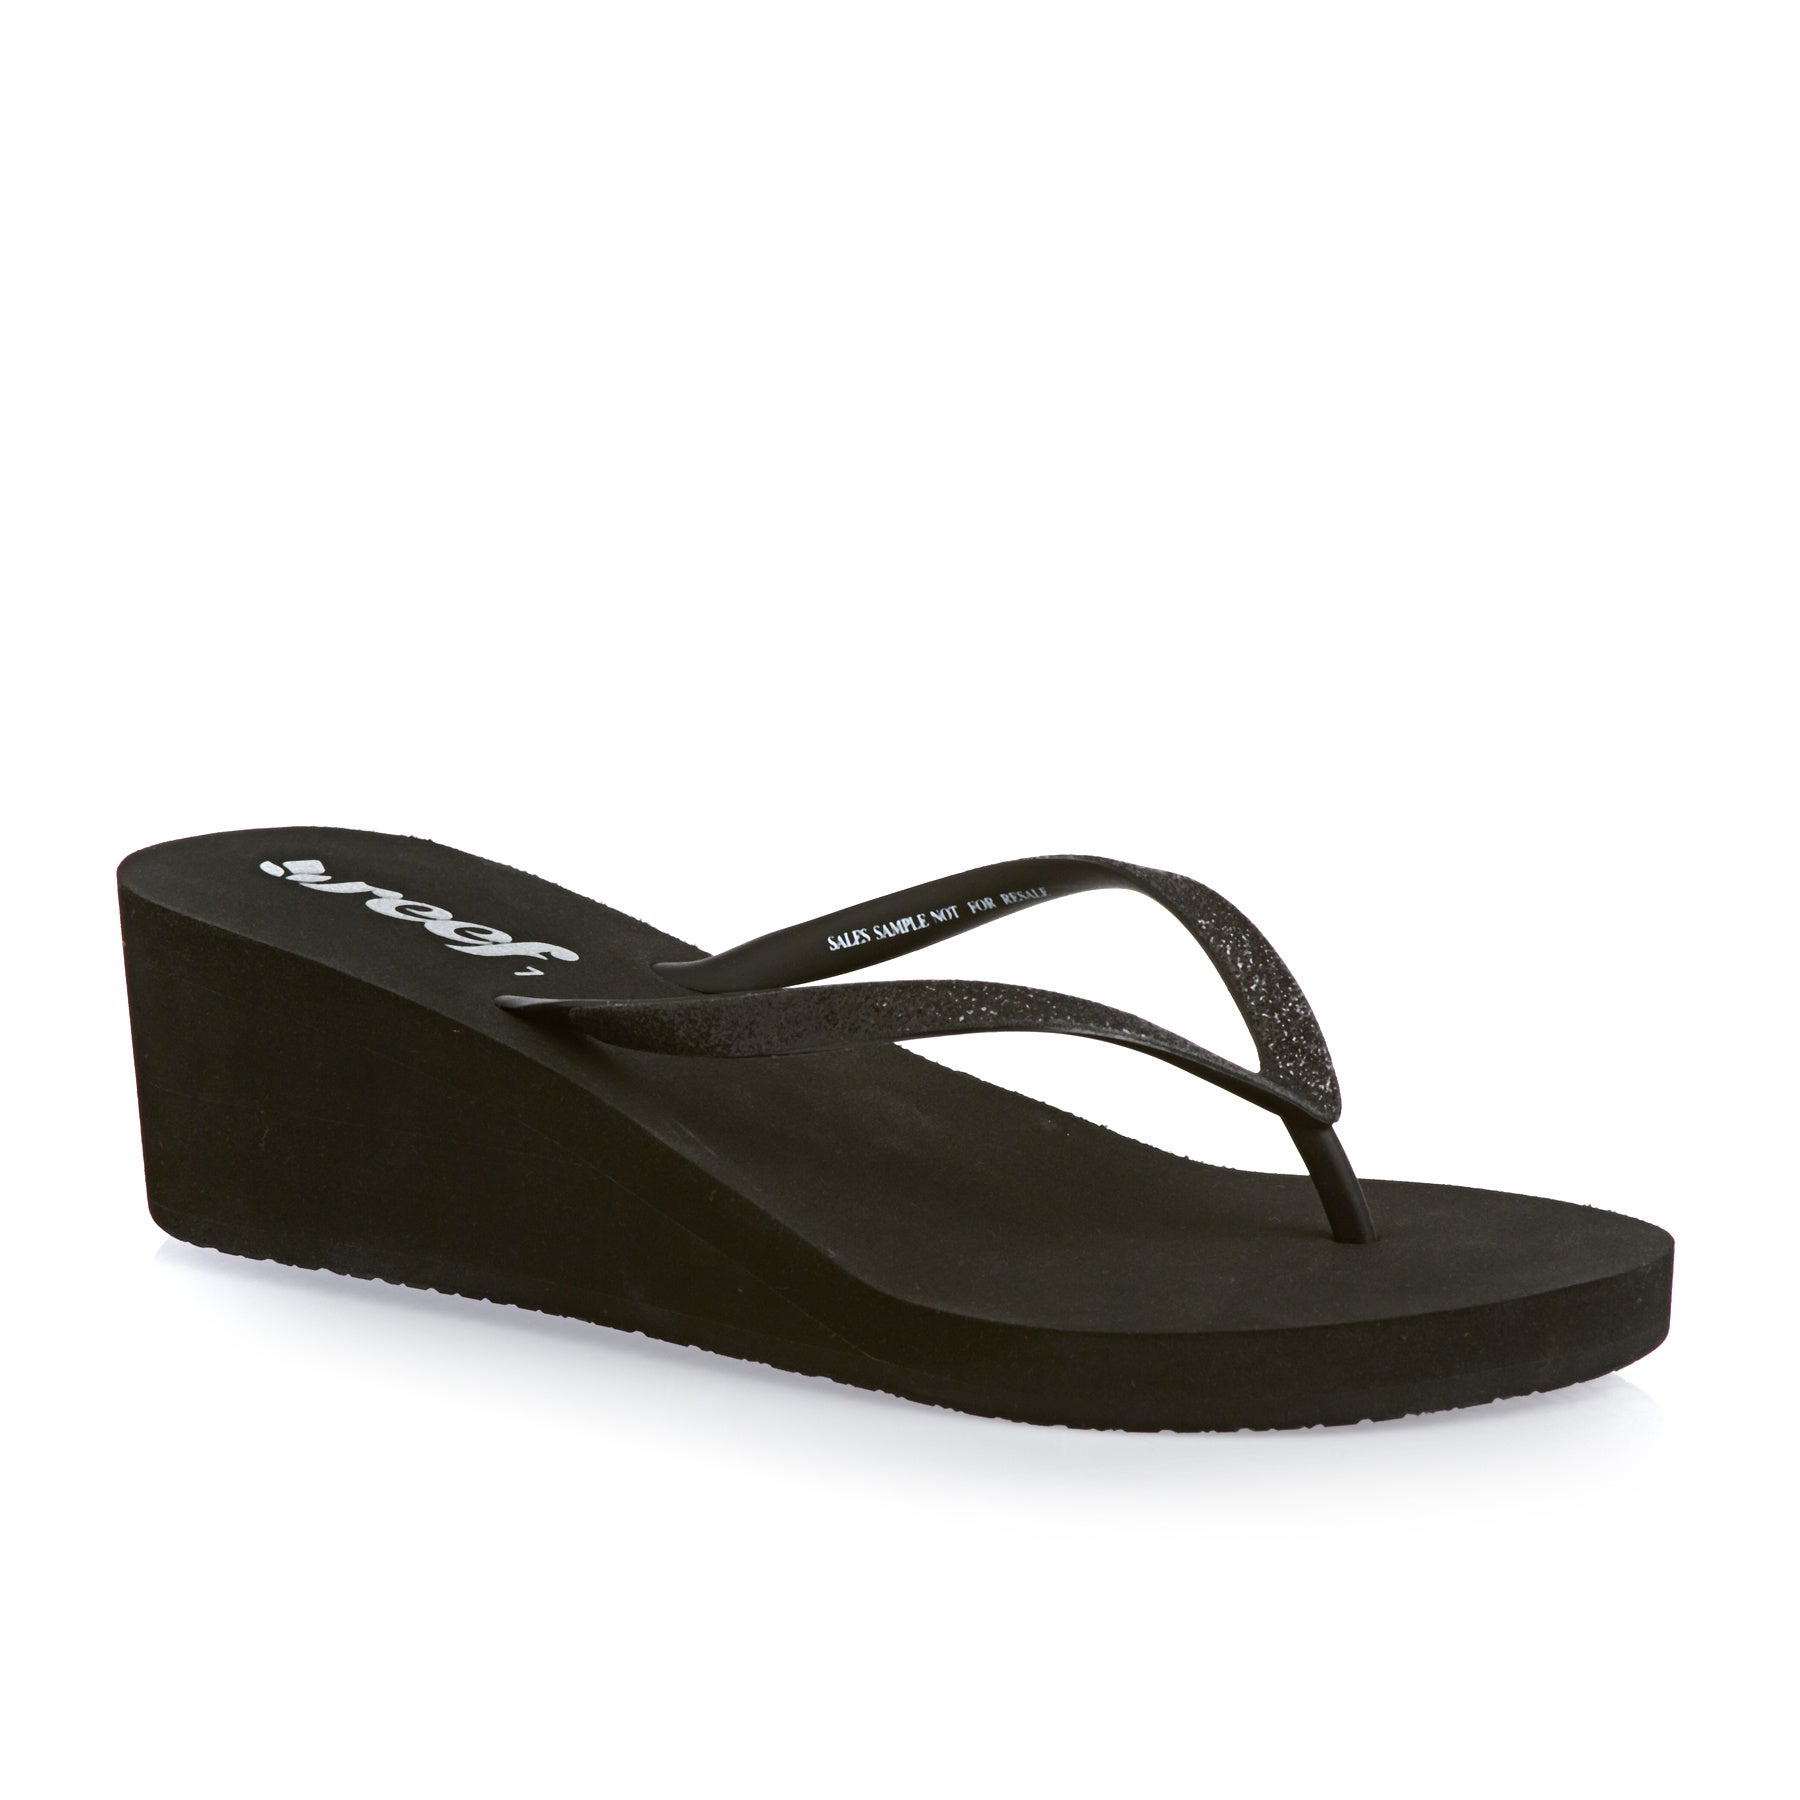 Reef Krystal Star Wedge Womens Sandals - Black/black